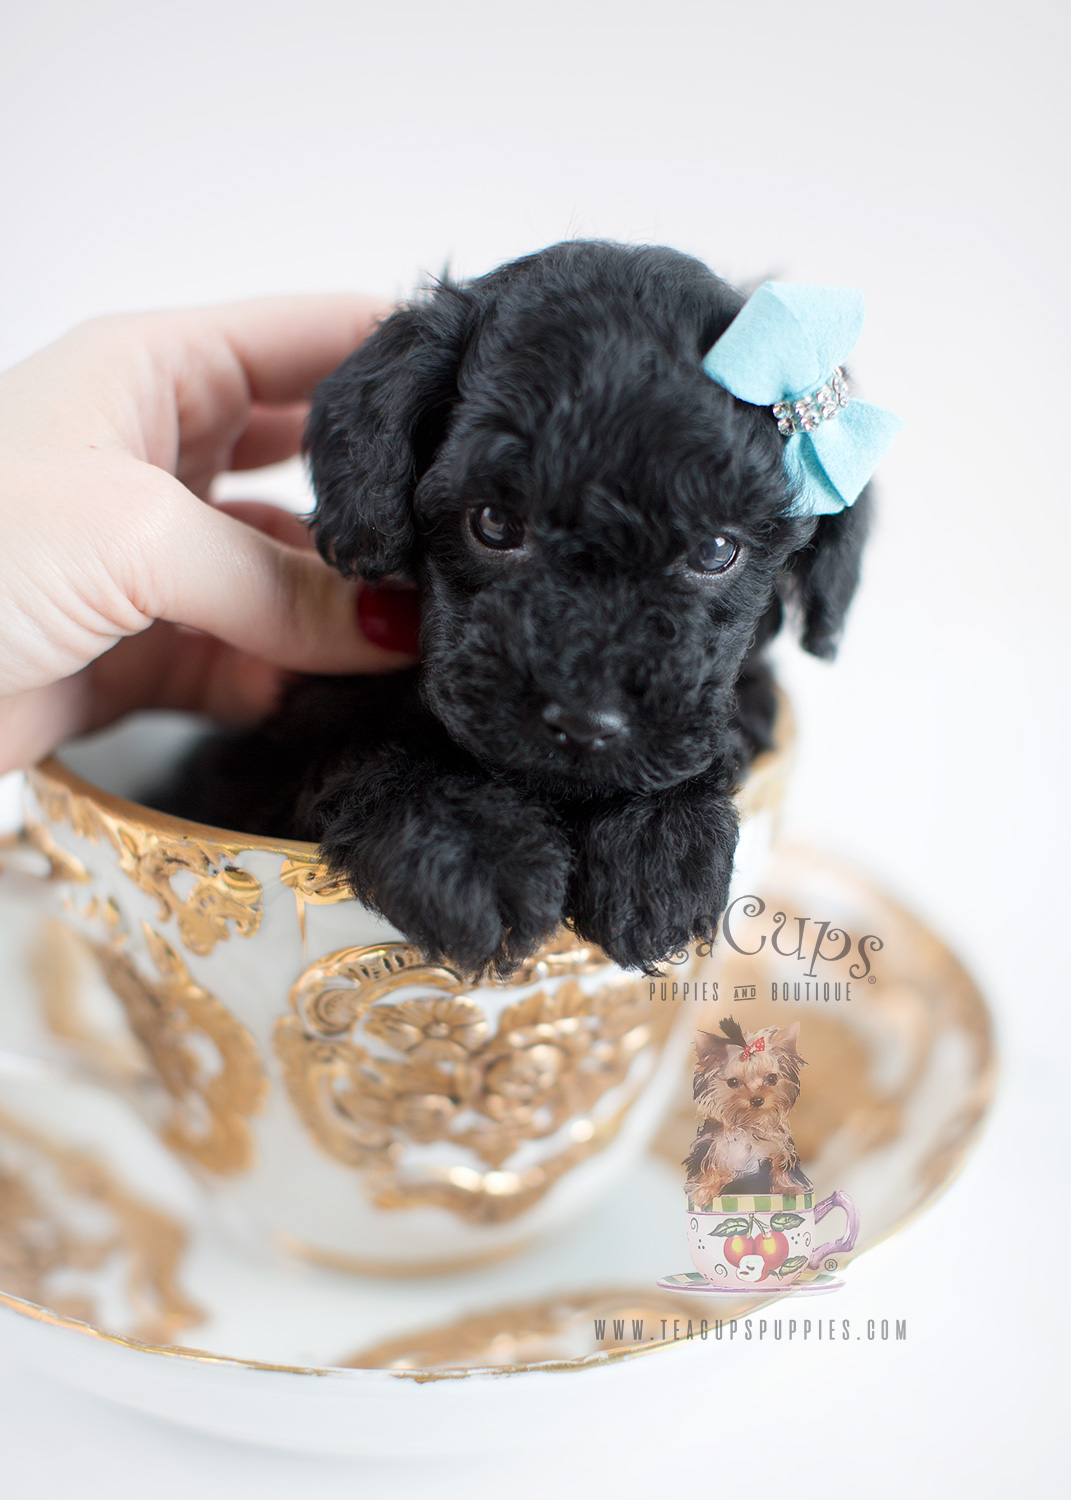 Puppy For Sale Teacup Puppies #035 Black Toy Poodle